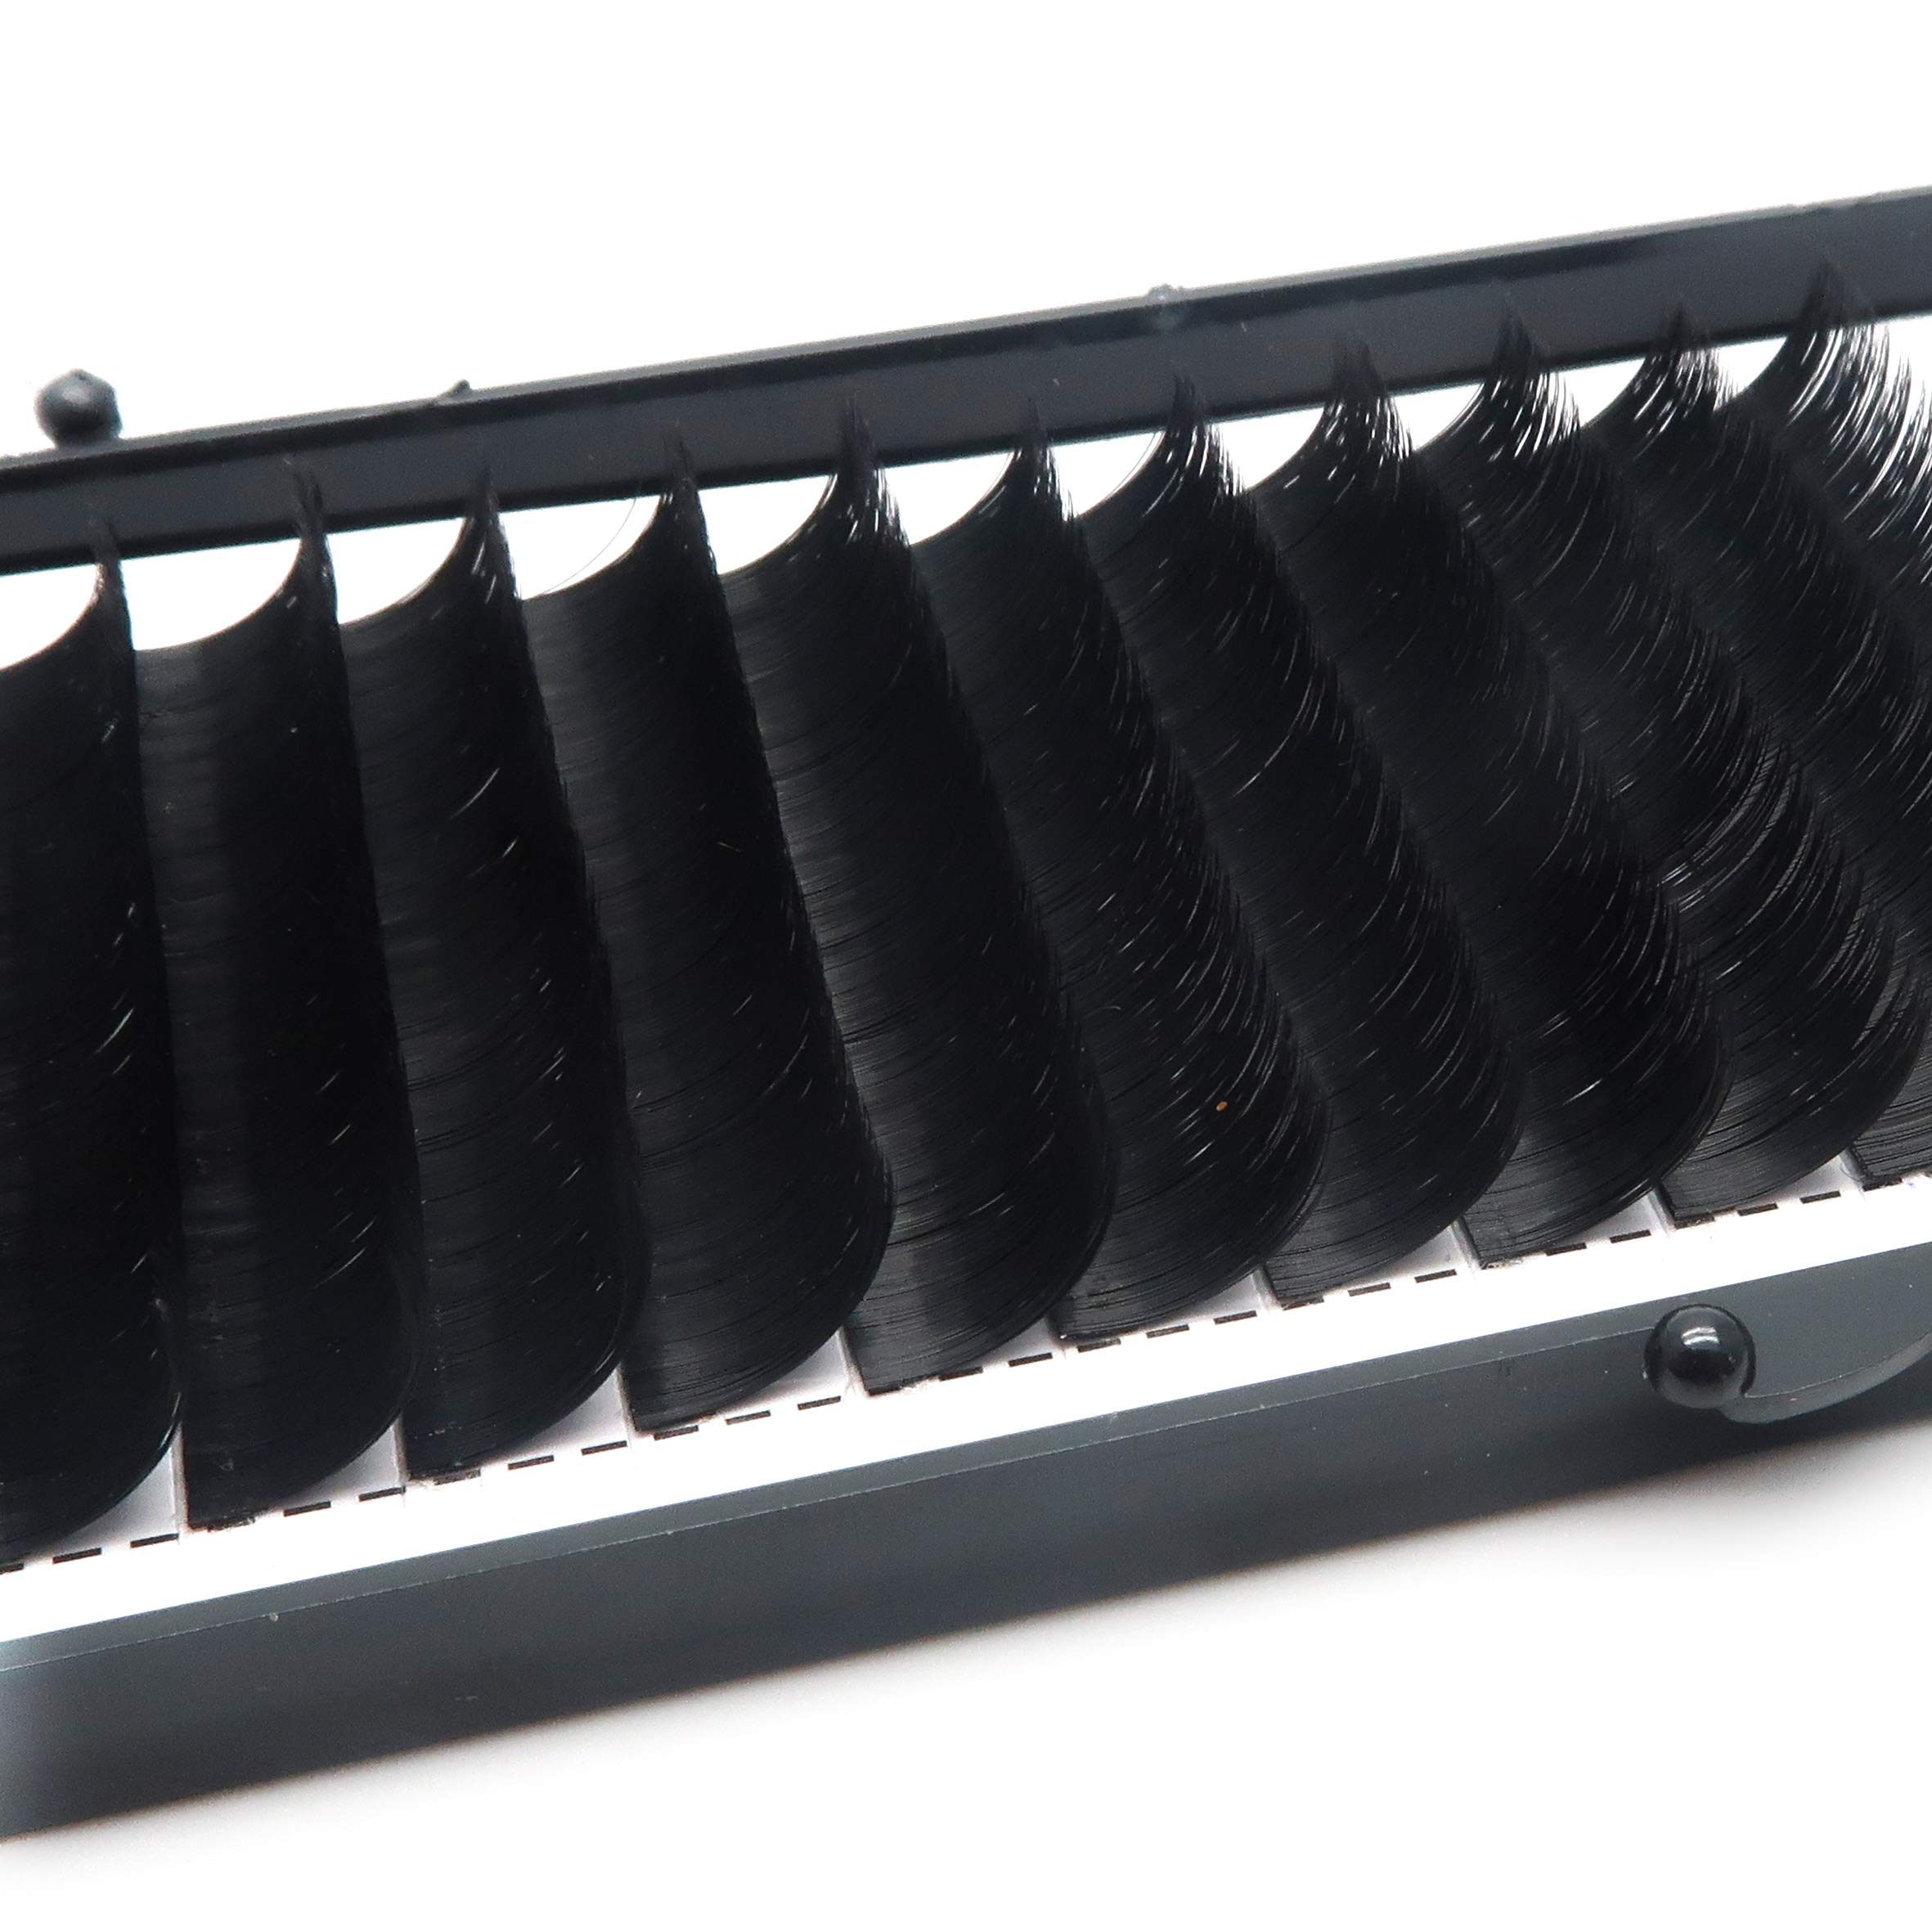 0.07mm C Curl Easy Volume Auto Bloosom Fan Professional Eyelash Extensions Makeup Lashes Individual Eyelashes